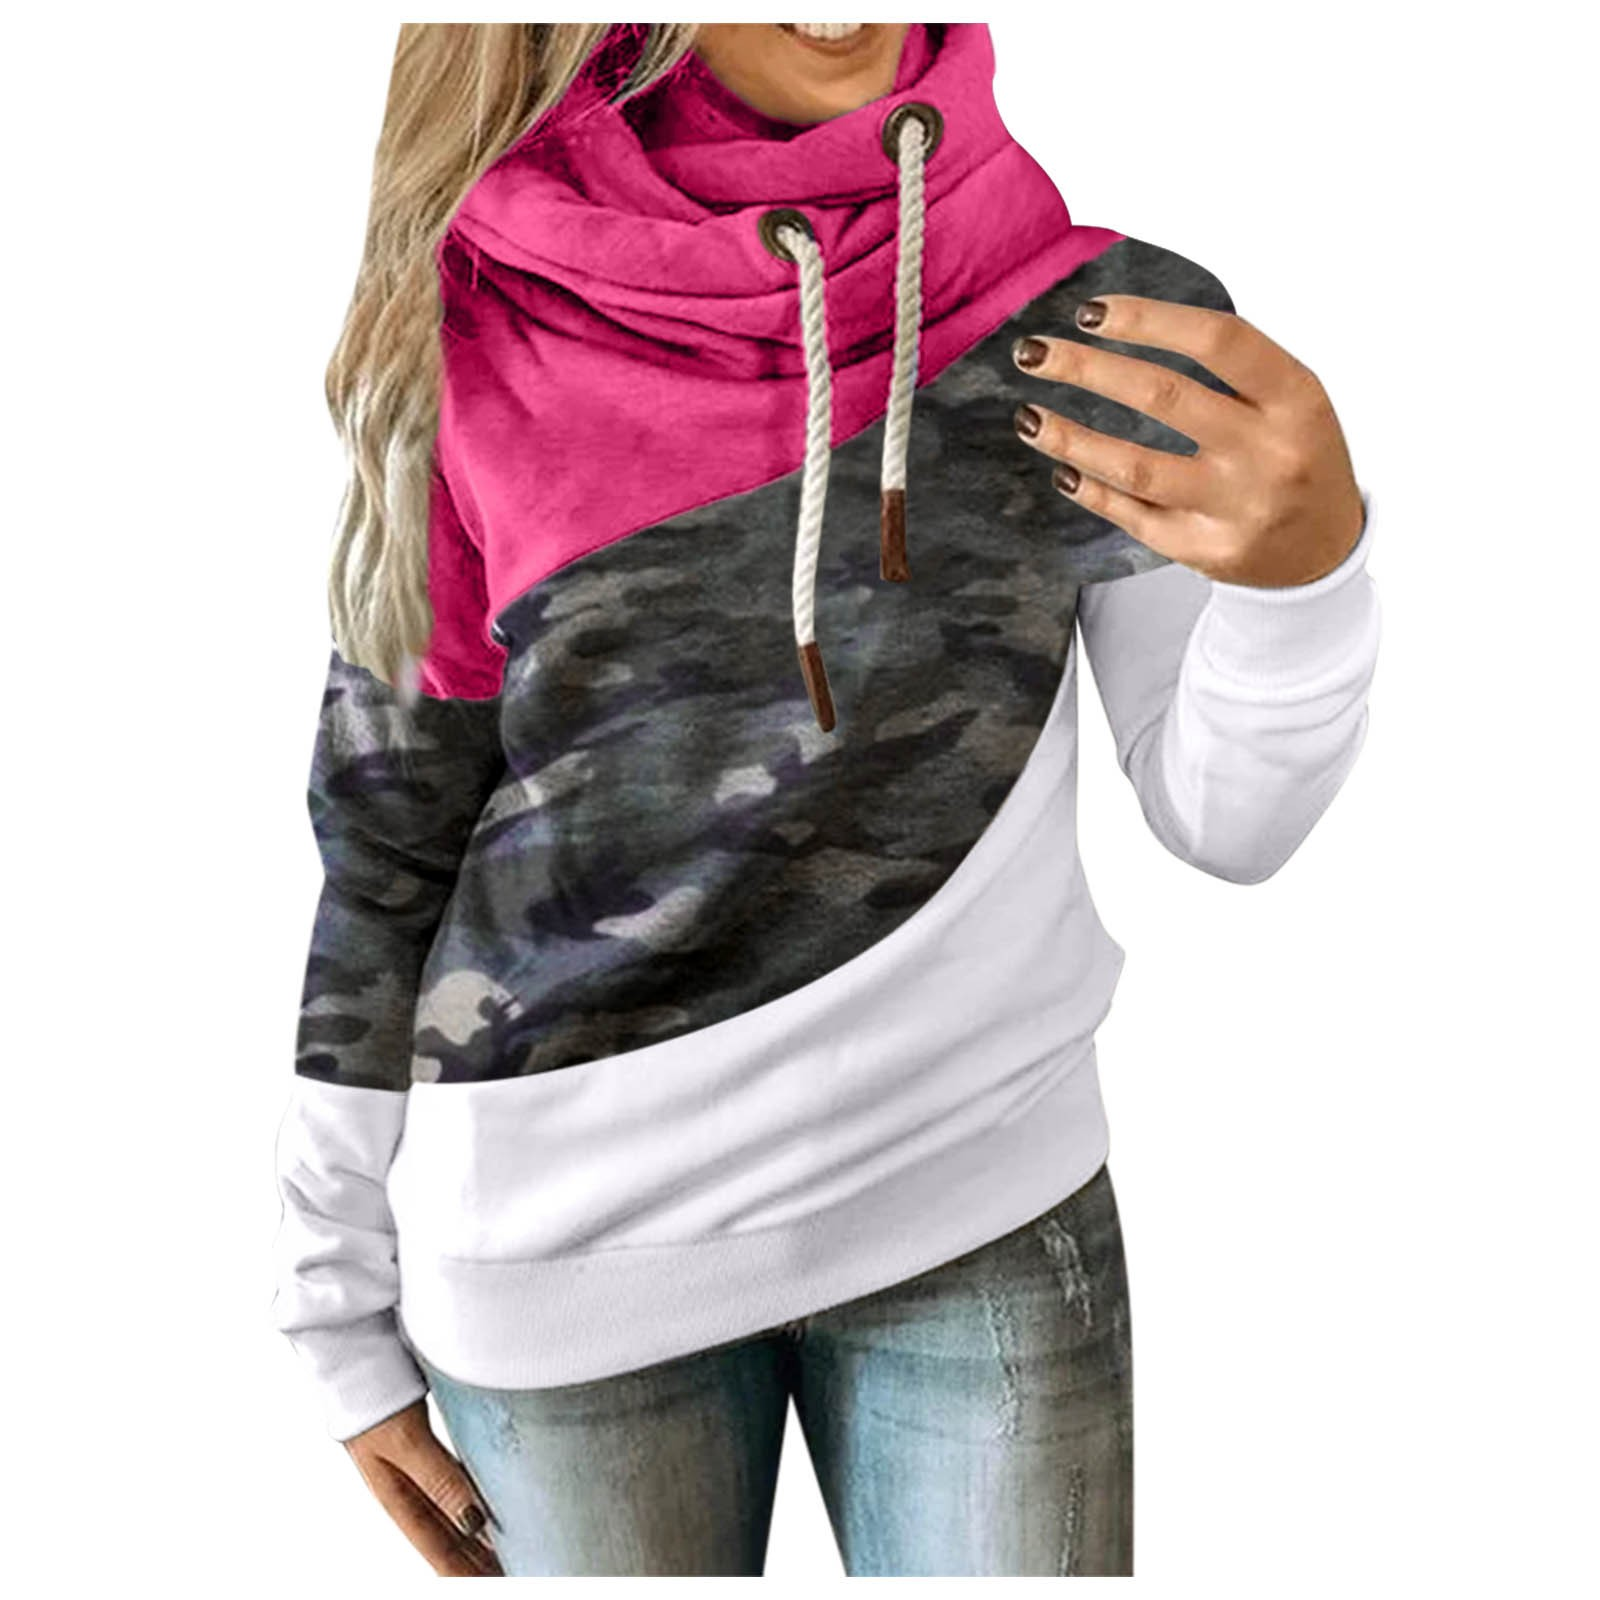 Hot Sale Women Casual Solid Contrast Long Sleeve Hoodie Sweatshirt Patchwork Printed Tops Sudaderas Mujer 2020 F Fast Ship 7